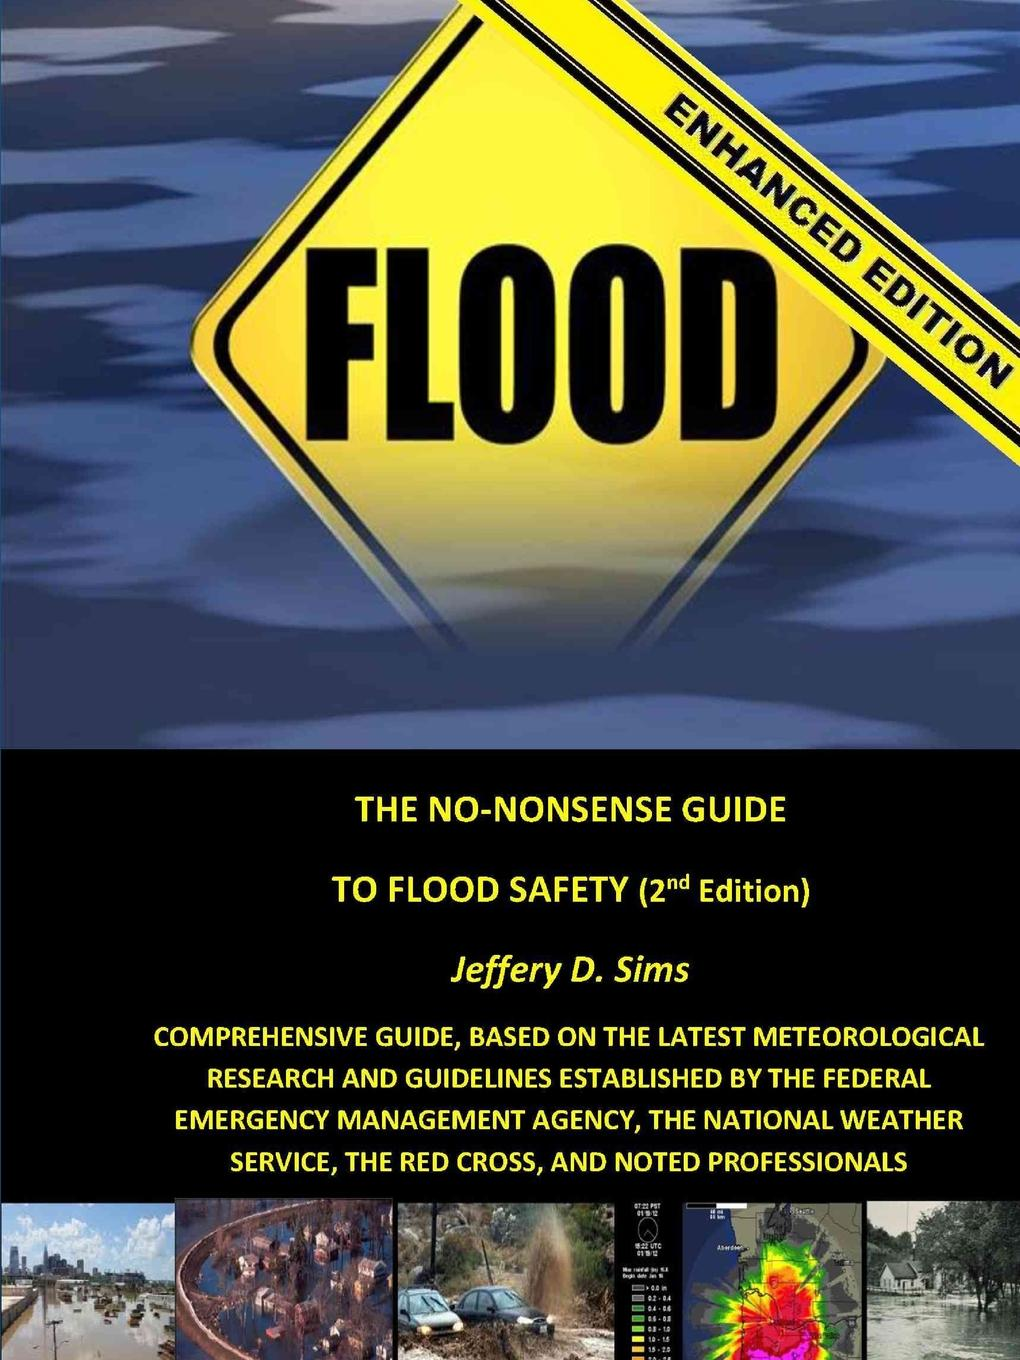 Jeffery Sims The No-Nonsense Guide To Flood Safety (Enhanced Edition) surafel mamo woldegbrael flood forecasting conterol and modeling for flood risk management systems